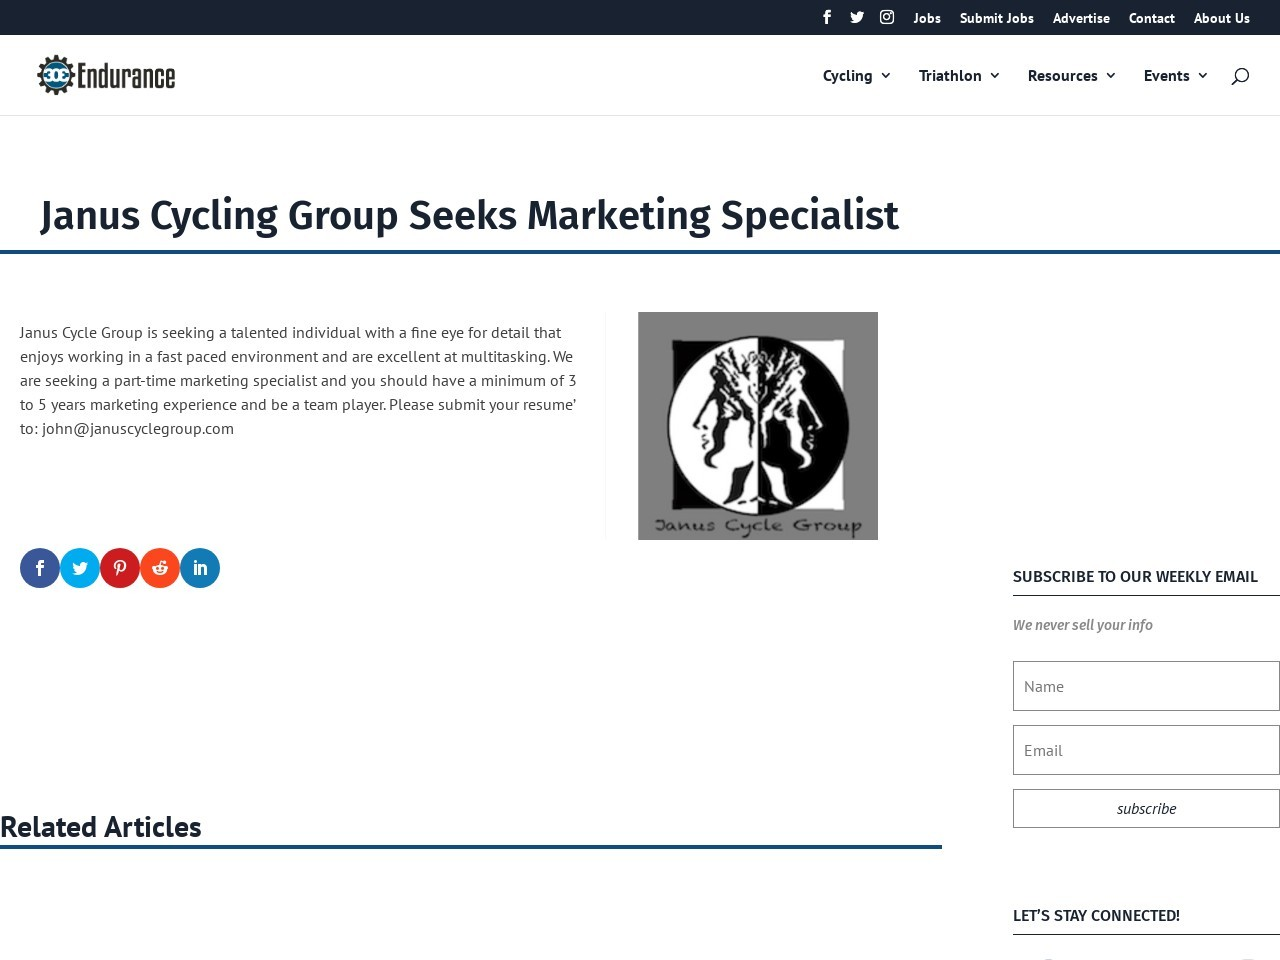 Janus Cycling Group Seeks Marketing Specialist